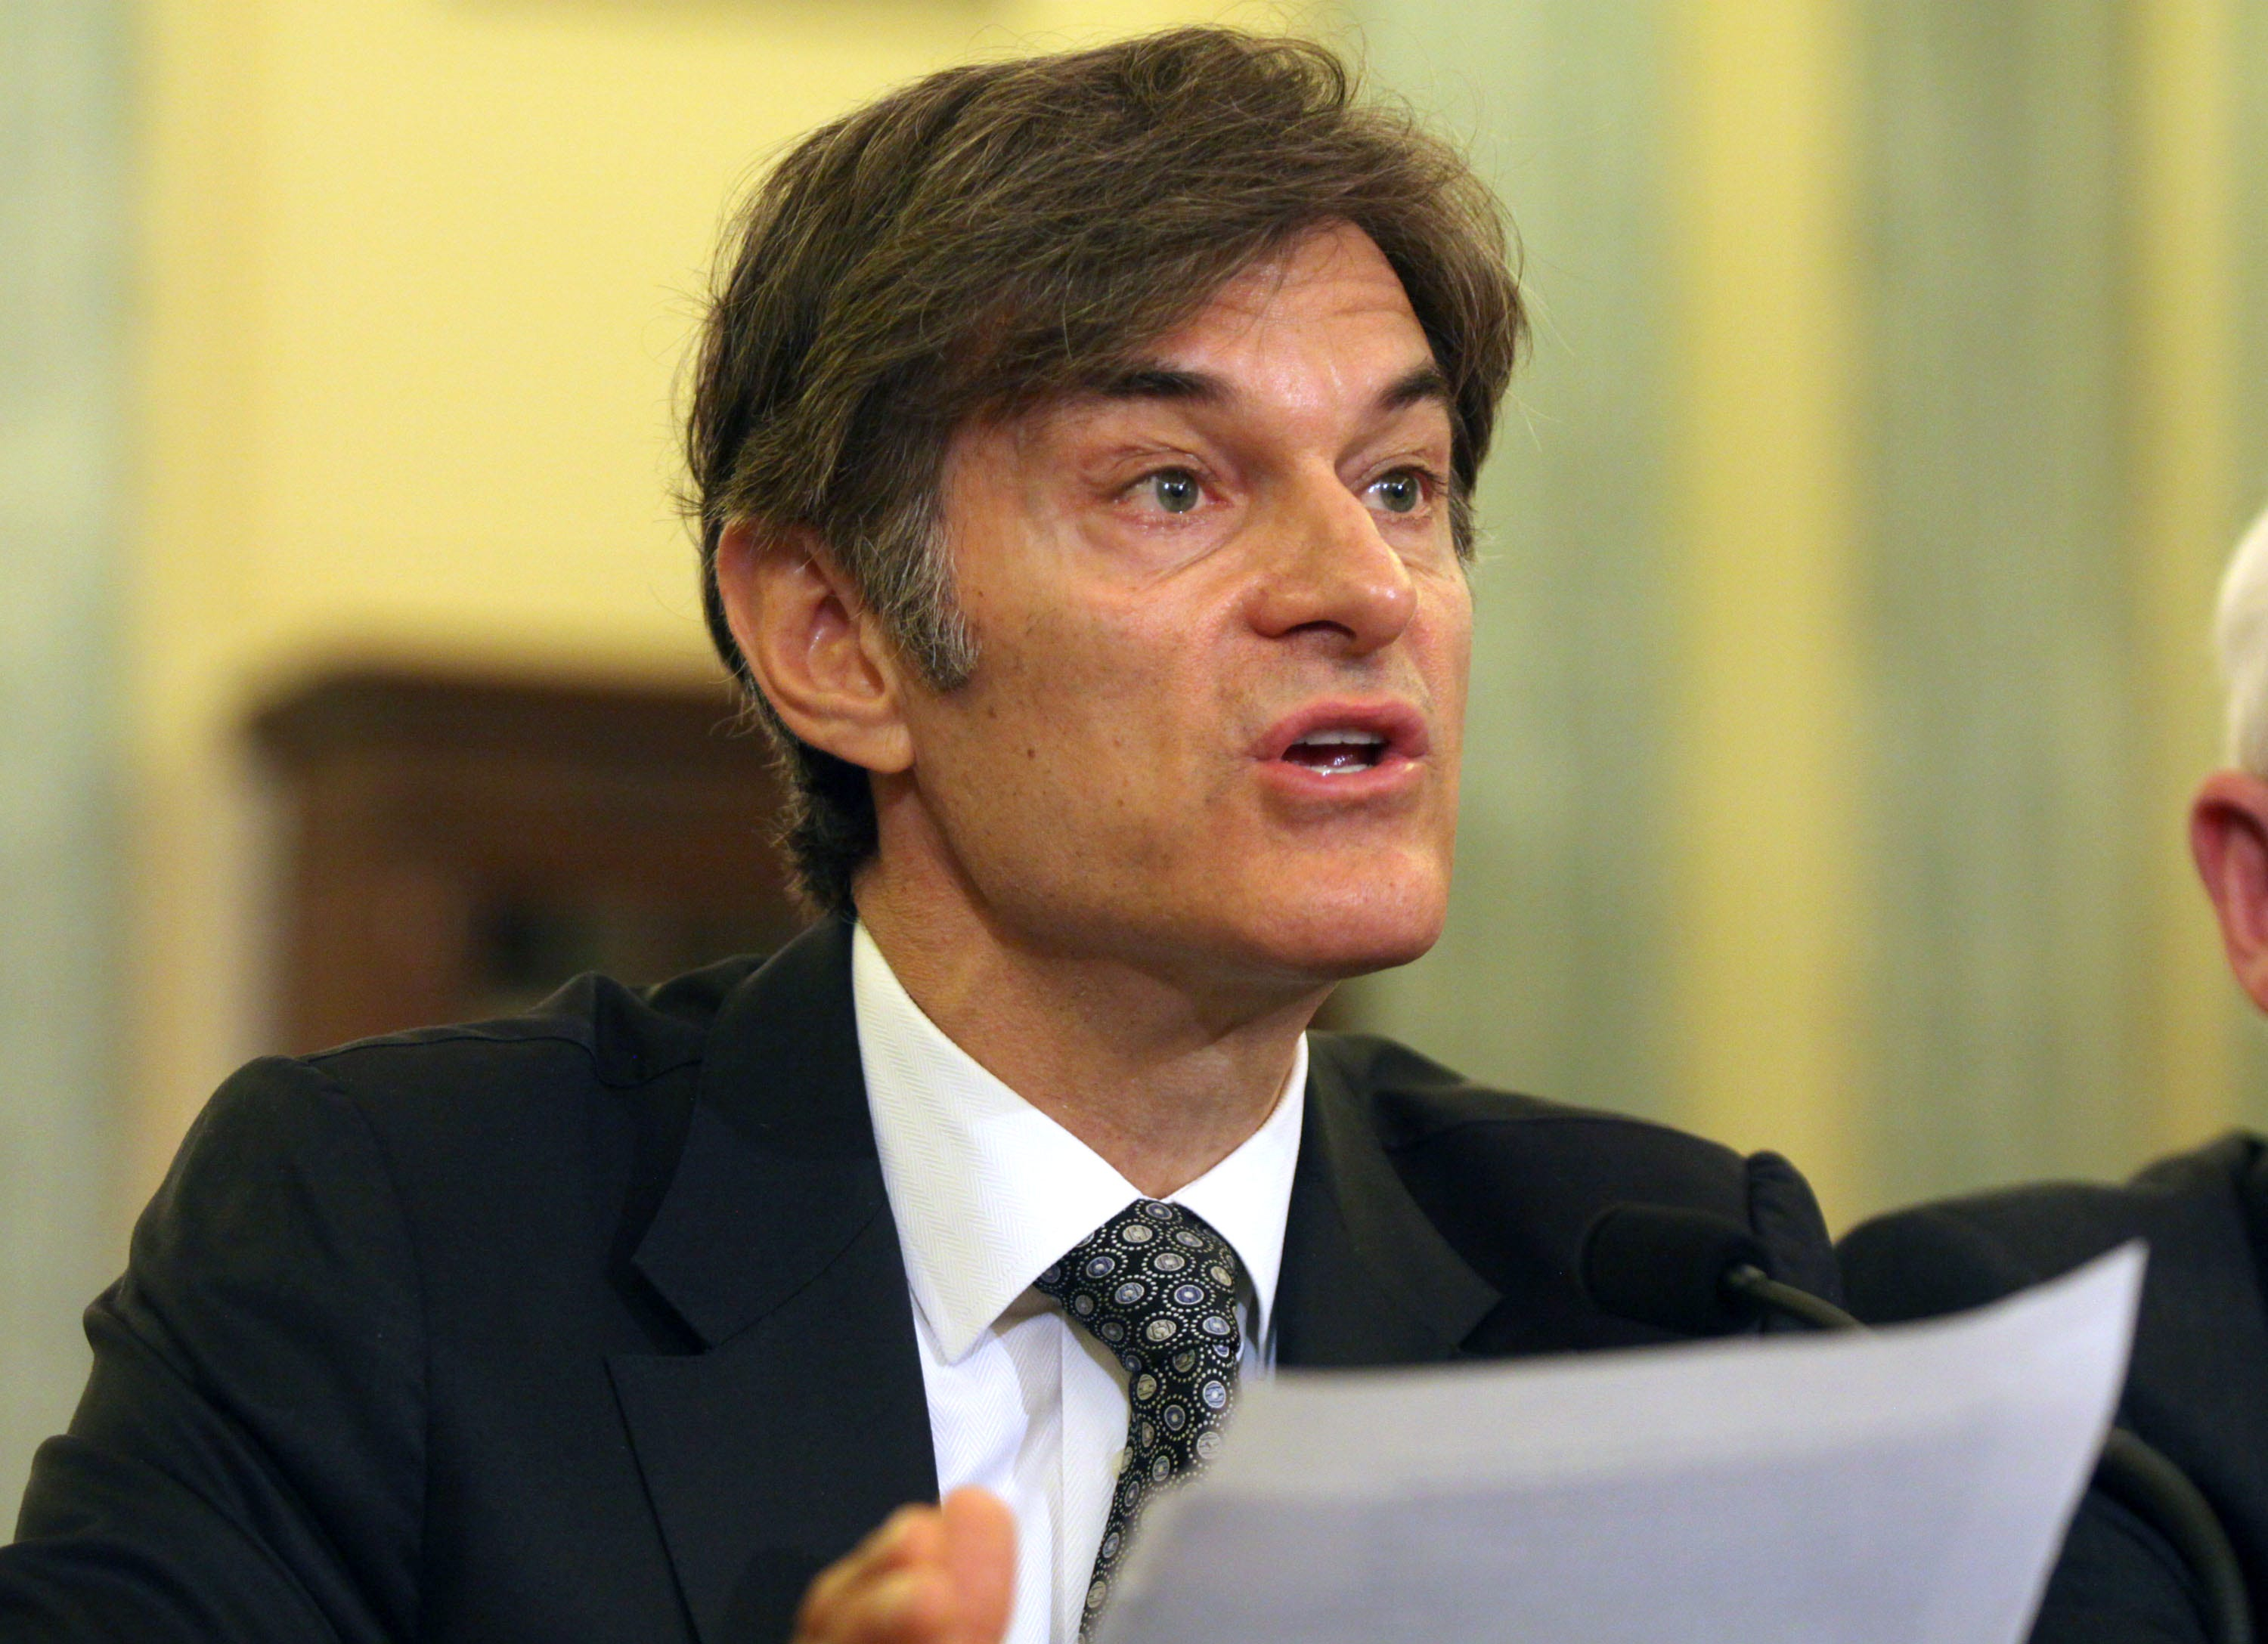 Columbia University College Of Physicians And Surgeons - Delaware's Dr. Oz is angry, ready to fight his critics